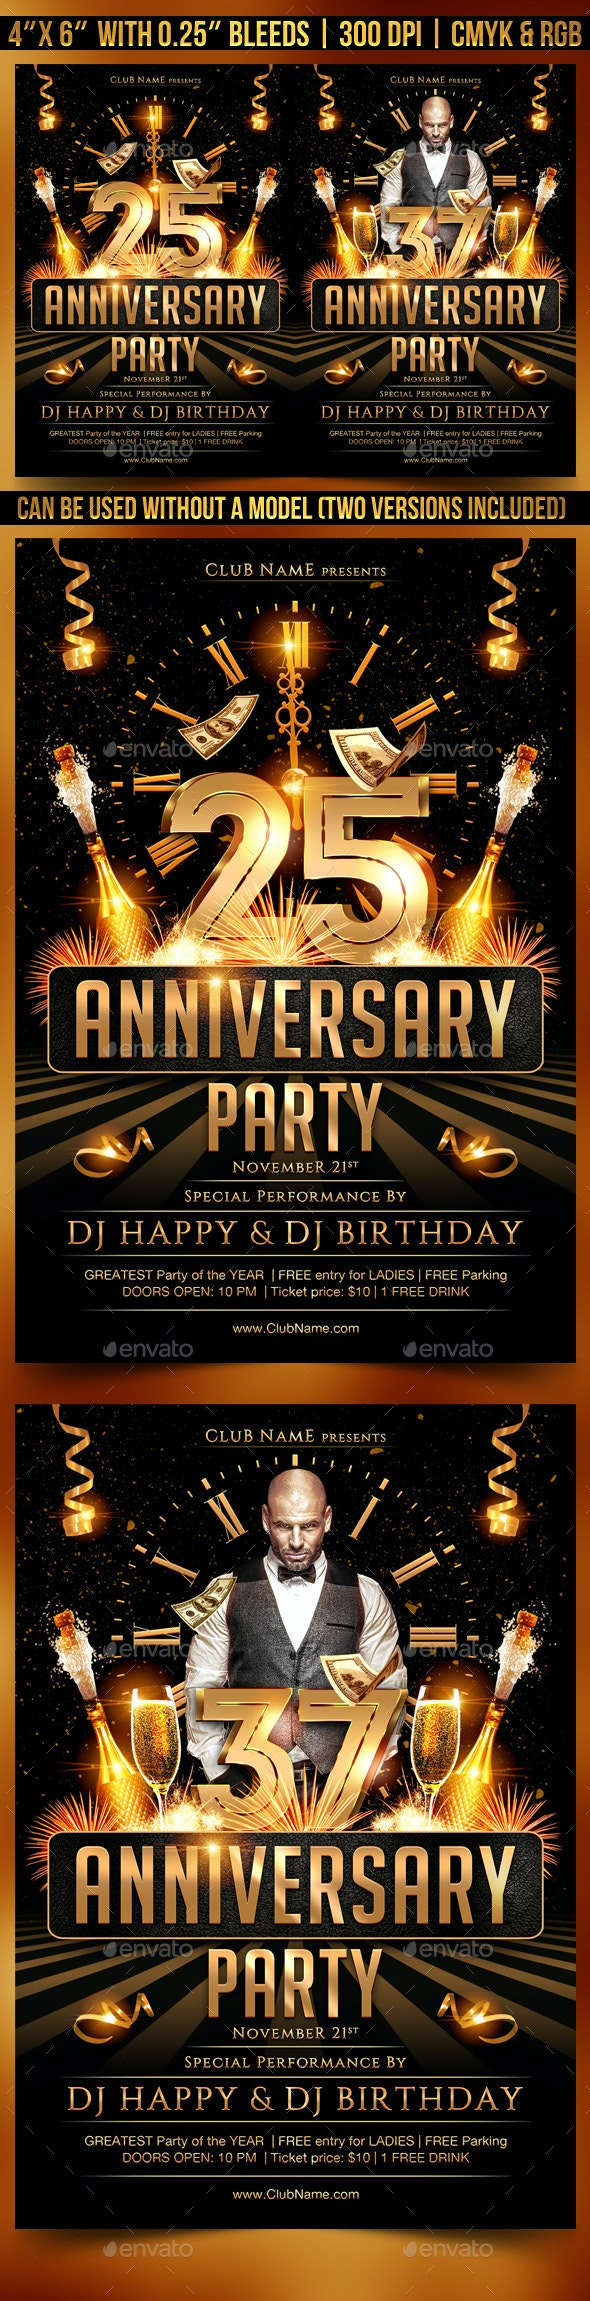 Anniversary Flyer Template - Clubs & Parties Events